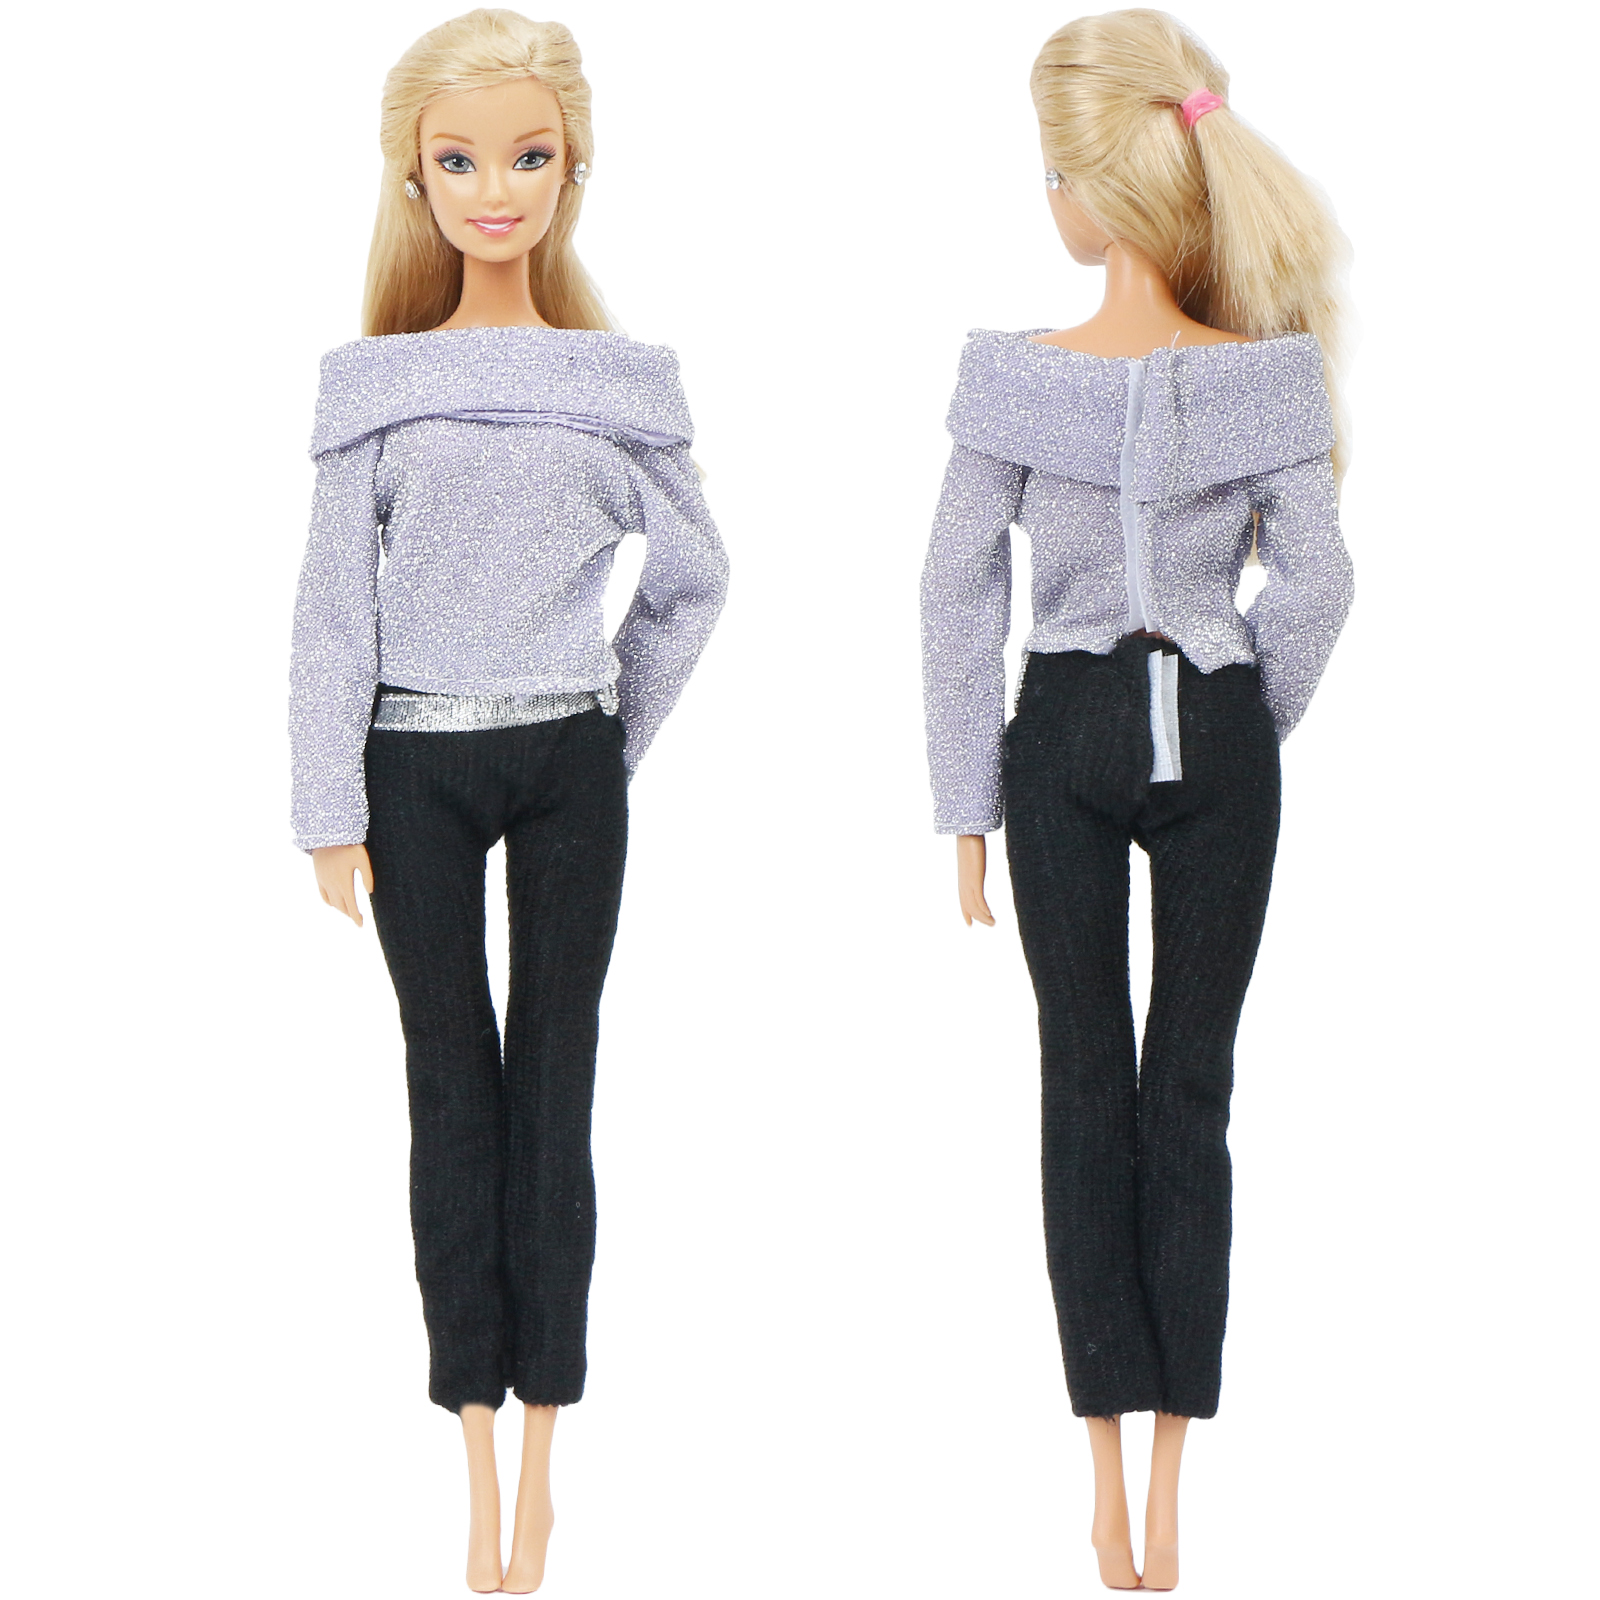 Handmade Fashion Doll Outfit Party Wear Blouse <font><b>Sexy</b></font> Tops + Black Warm Pants Trousers Belt Clothes for Barbie Doll Accessories image